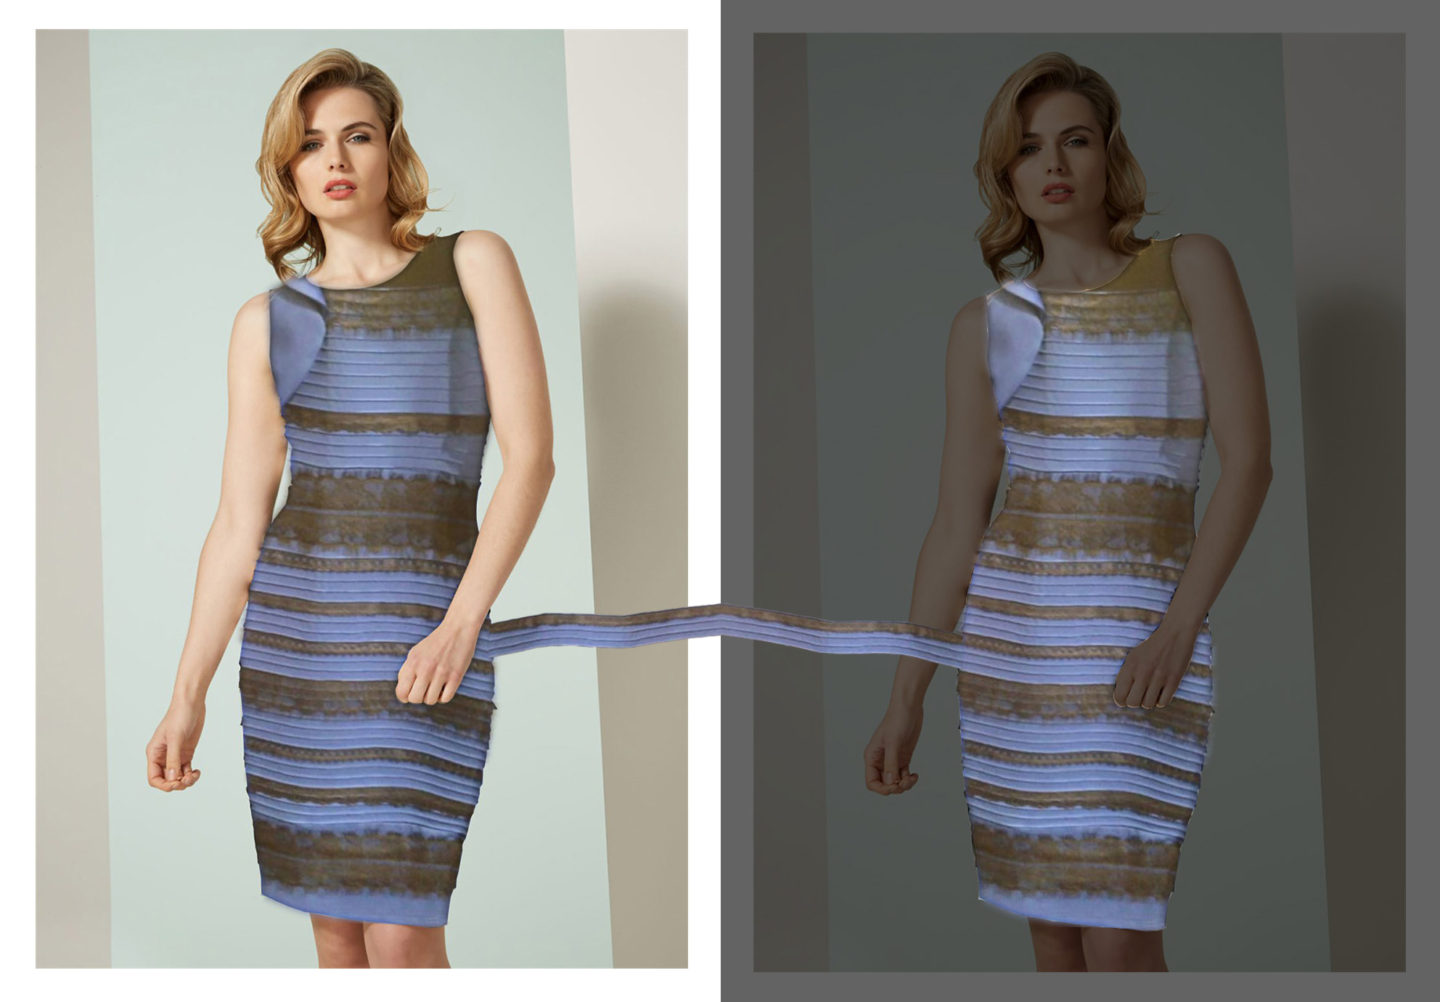 How does a black and blue dress sometimes appear white and gold?